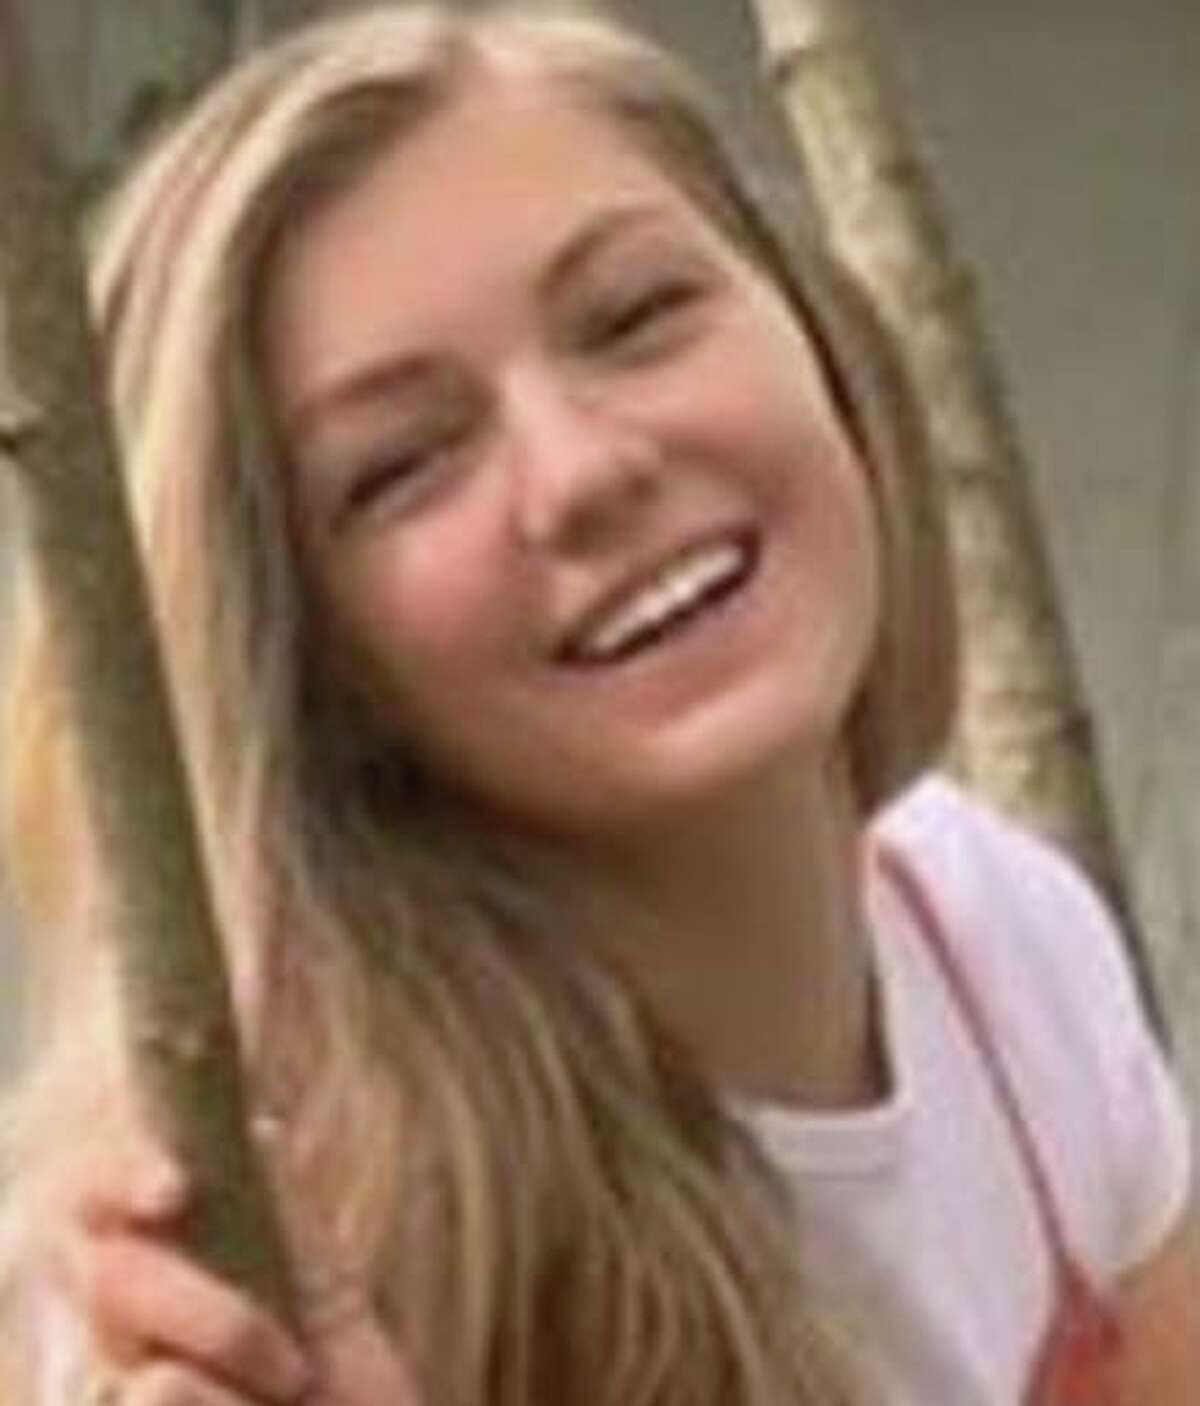 A photo of Gabby Petito, included in a Facebook post about her disappearance by the North Port Police Department in Florida, the lead agency in the missing person case. (Courtesy North Port Police Department/TNS)